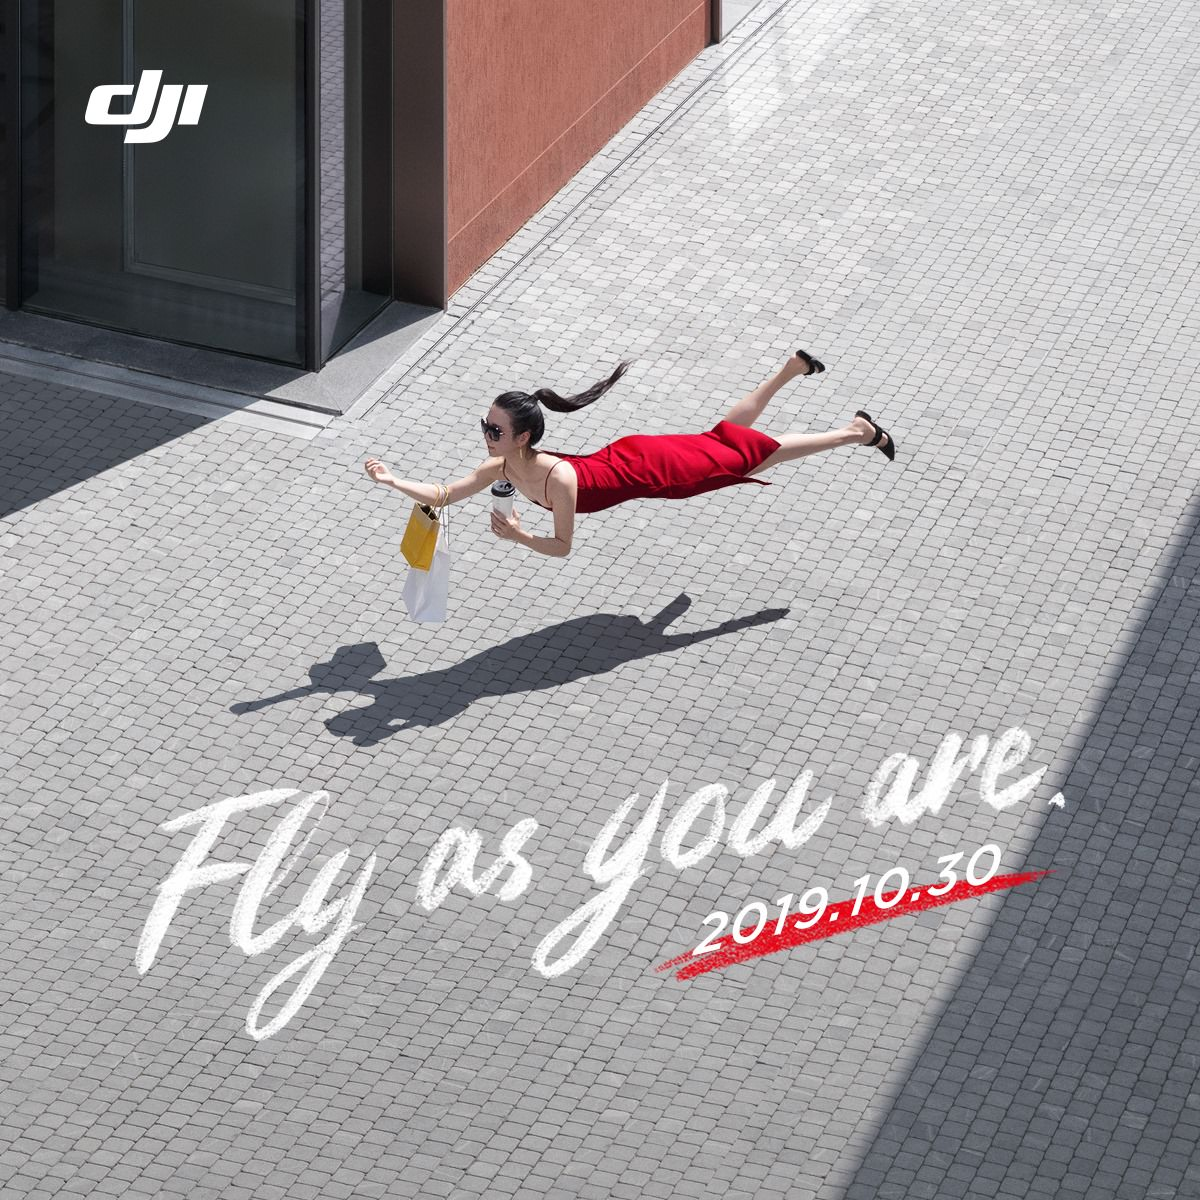 DJI fly as you are - appuntamento al 30 Ottobre per la presentazione del nuovo drone DJI